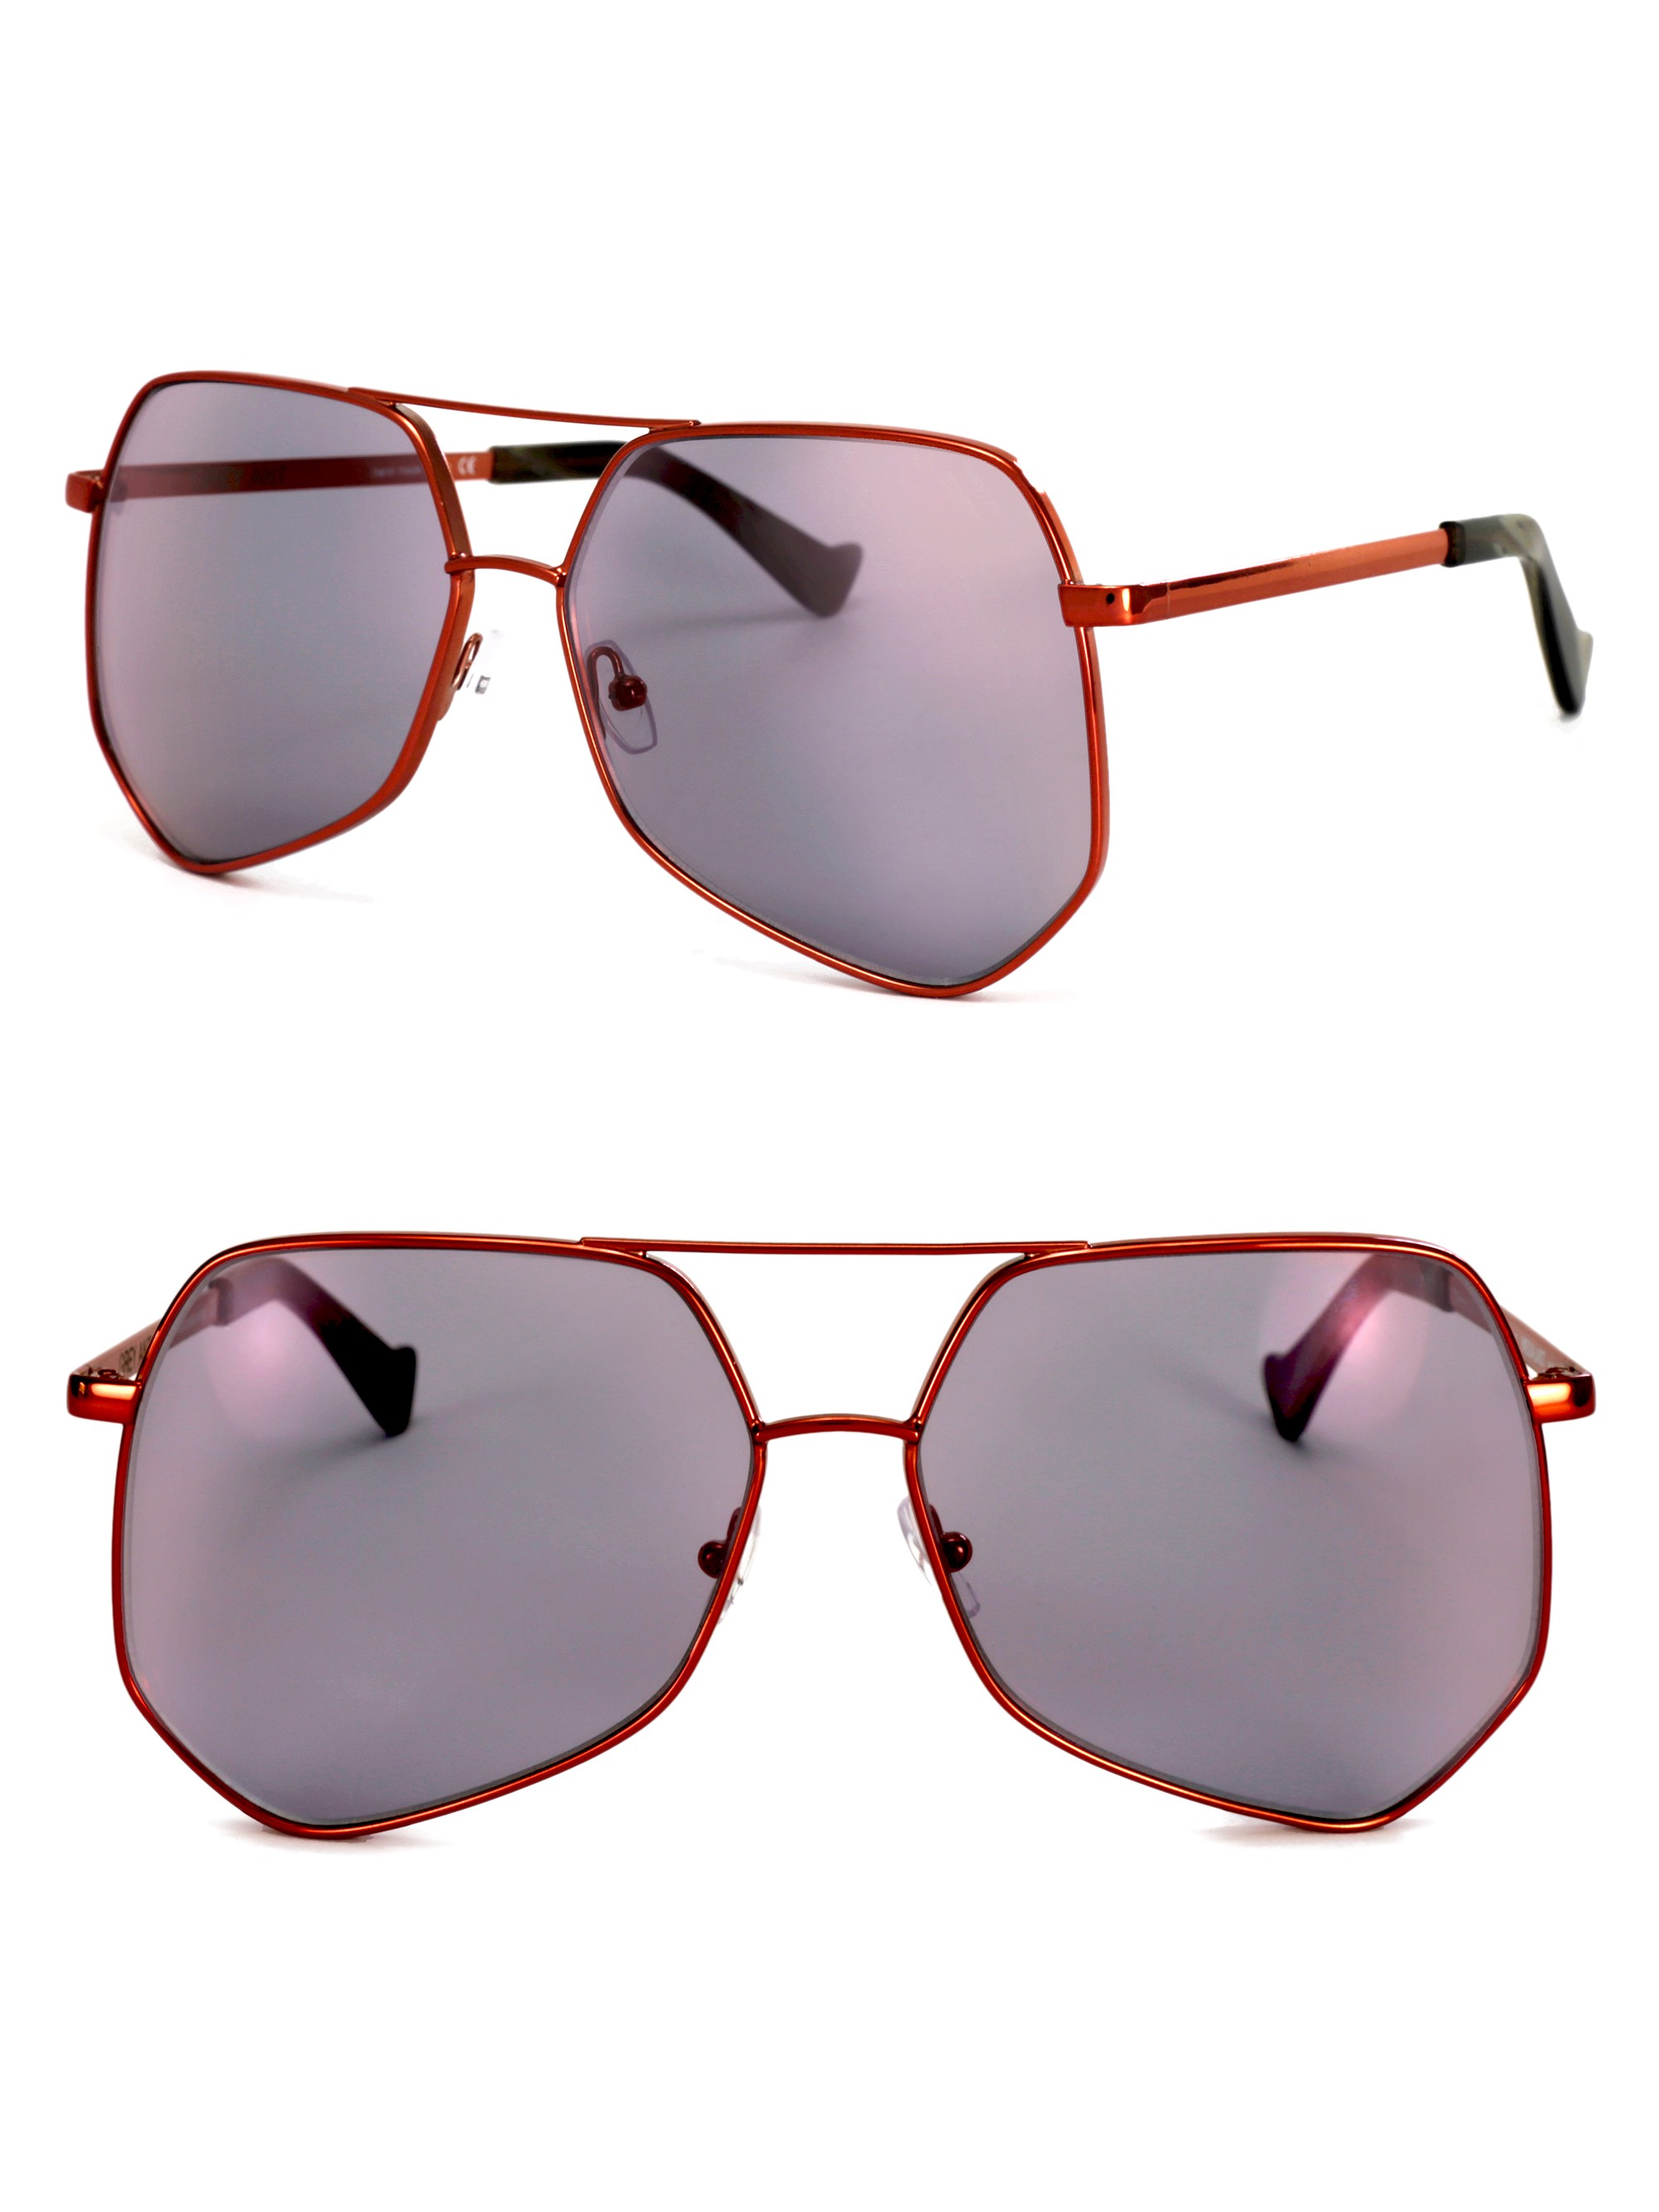 Grey Ant Megalast 61Mm The Wire Hexagon Aviator Sunglasses In Red